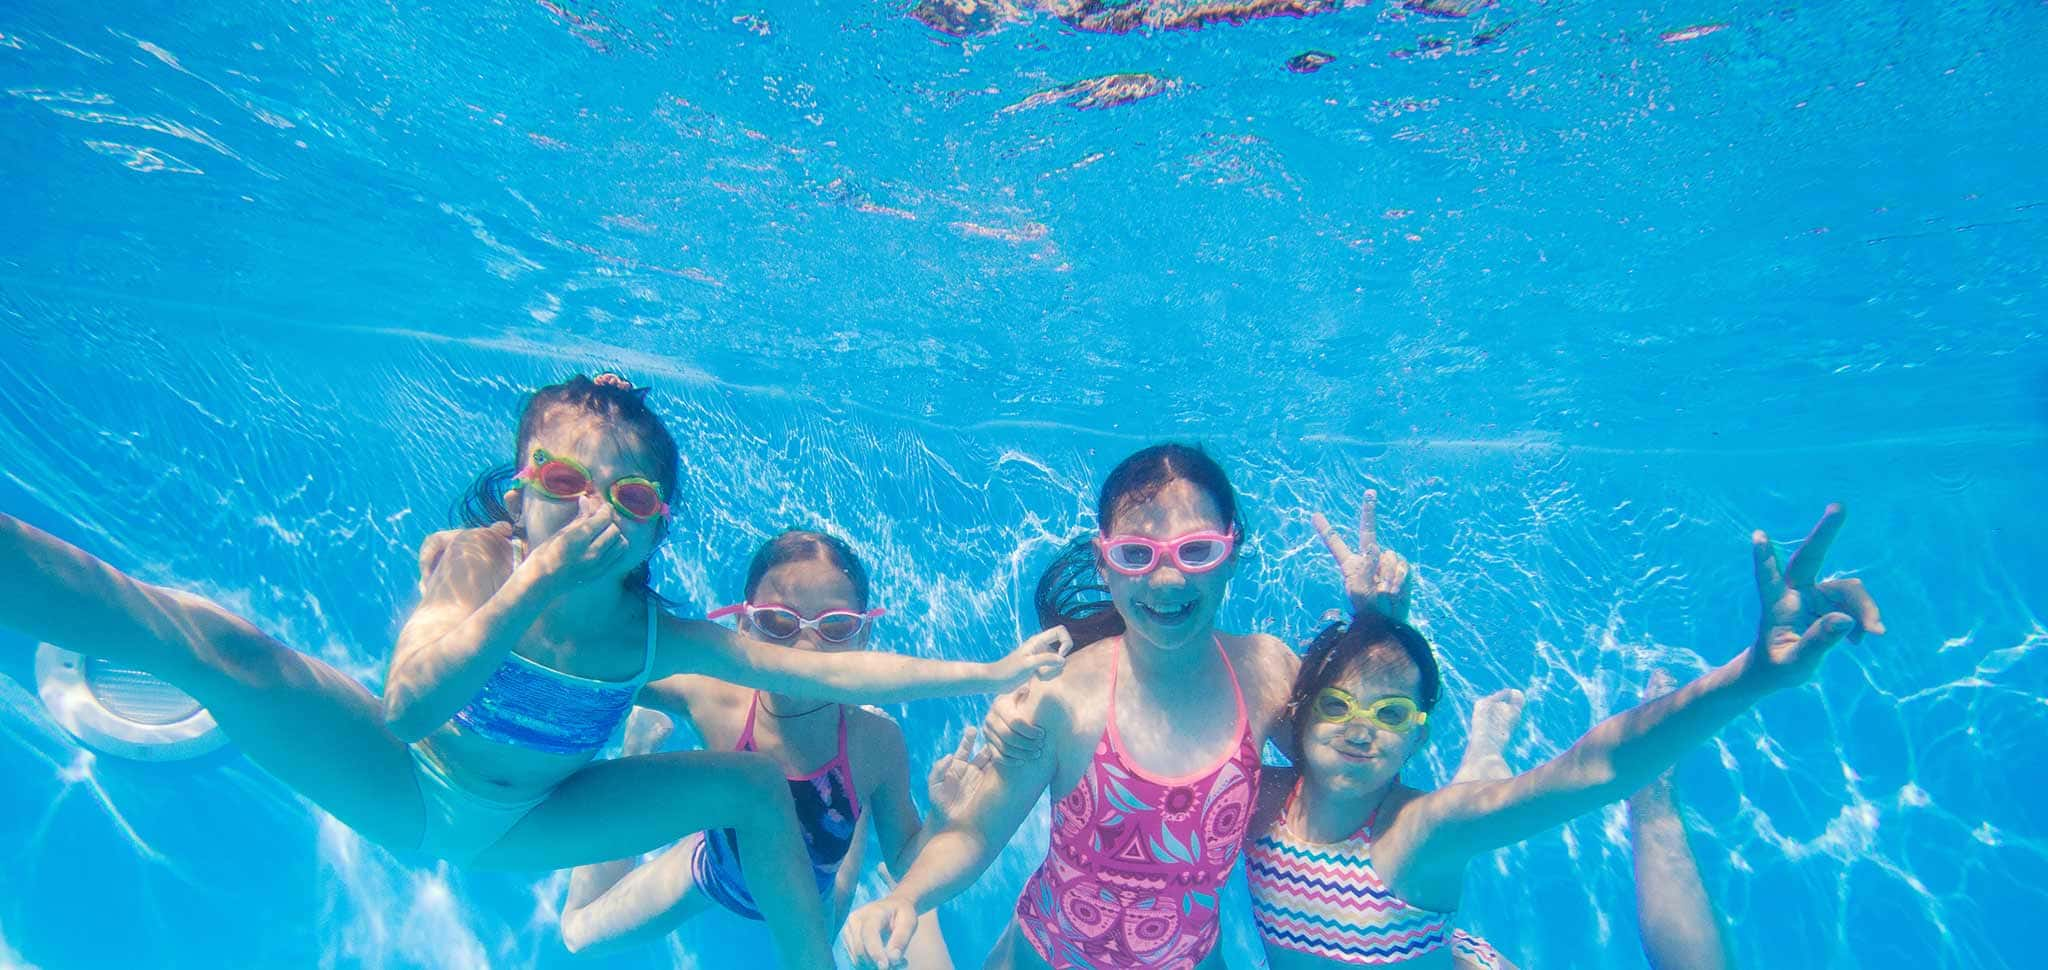 A group of children playing underwater in a swimming pool